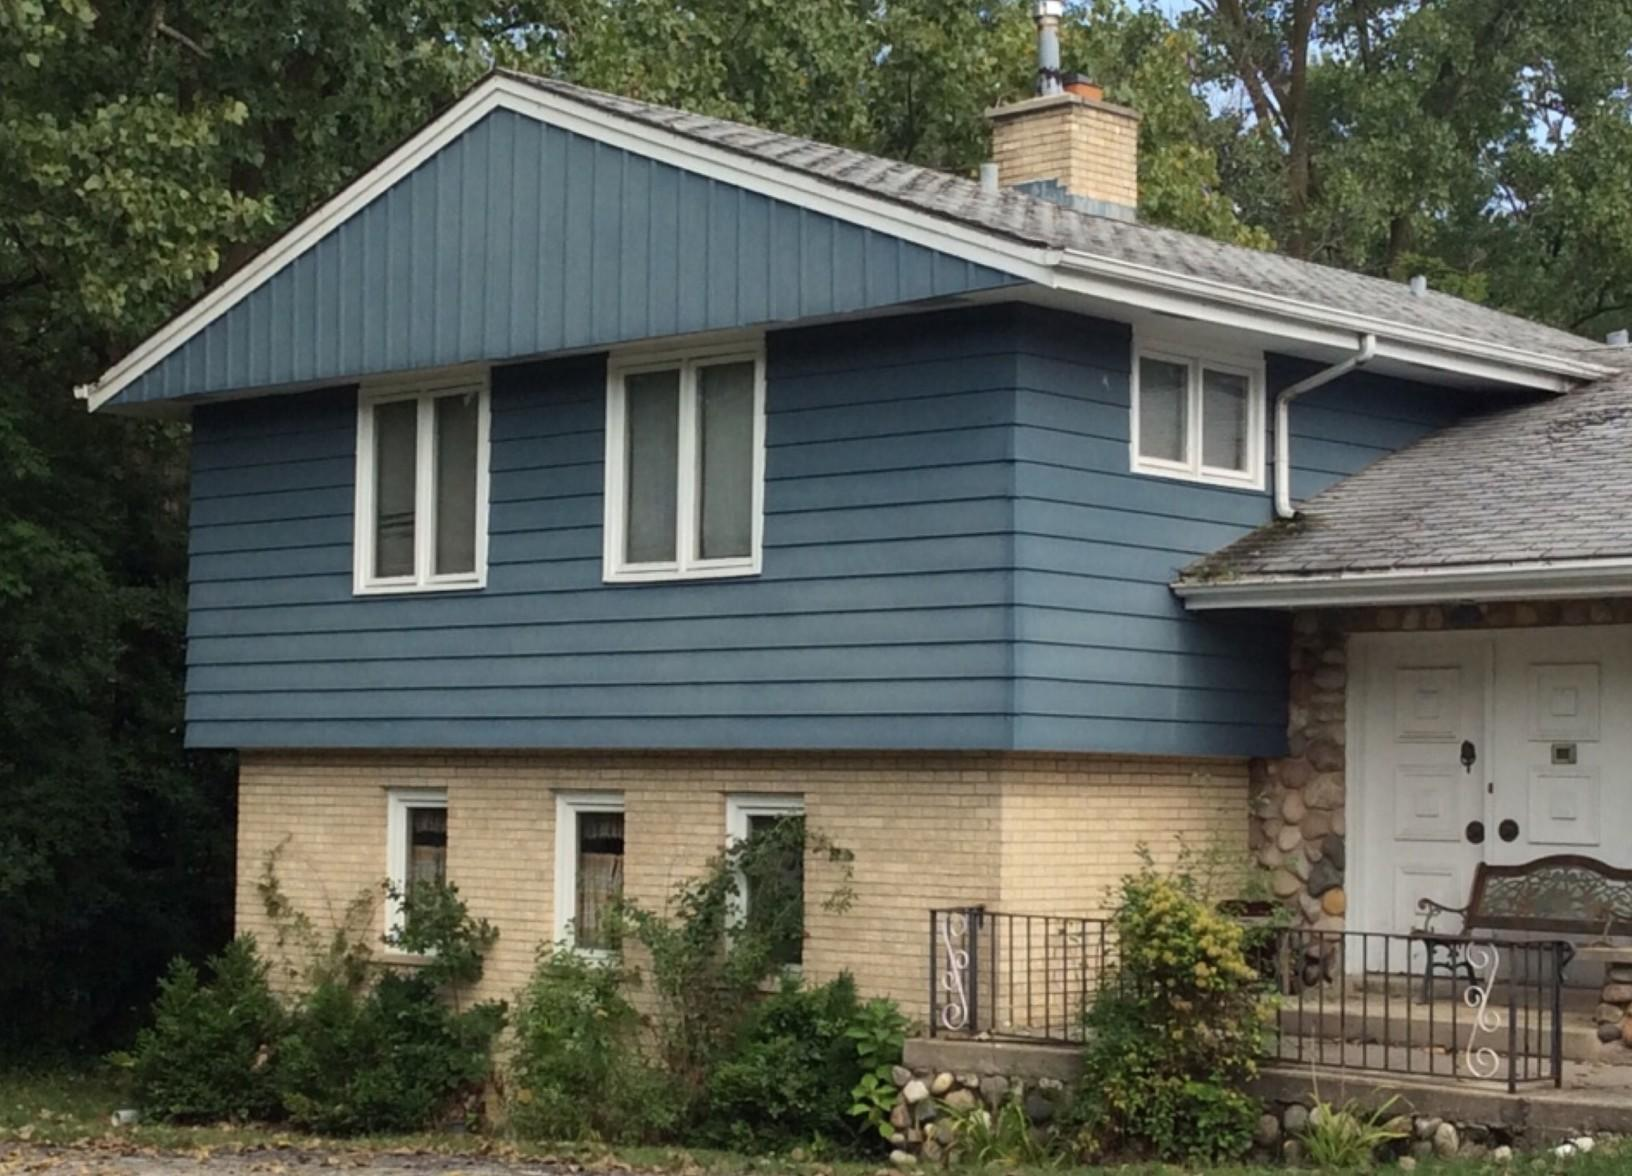 Siding and Roof Replacement on a Classic Home in Palos HIlls, IL - Before Photo